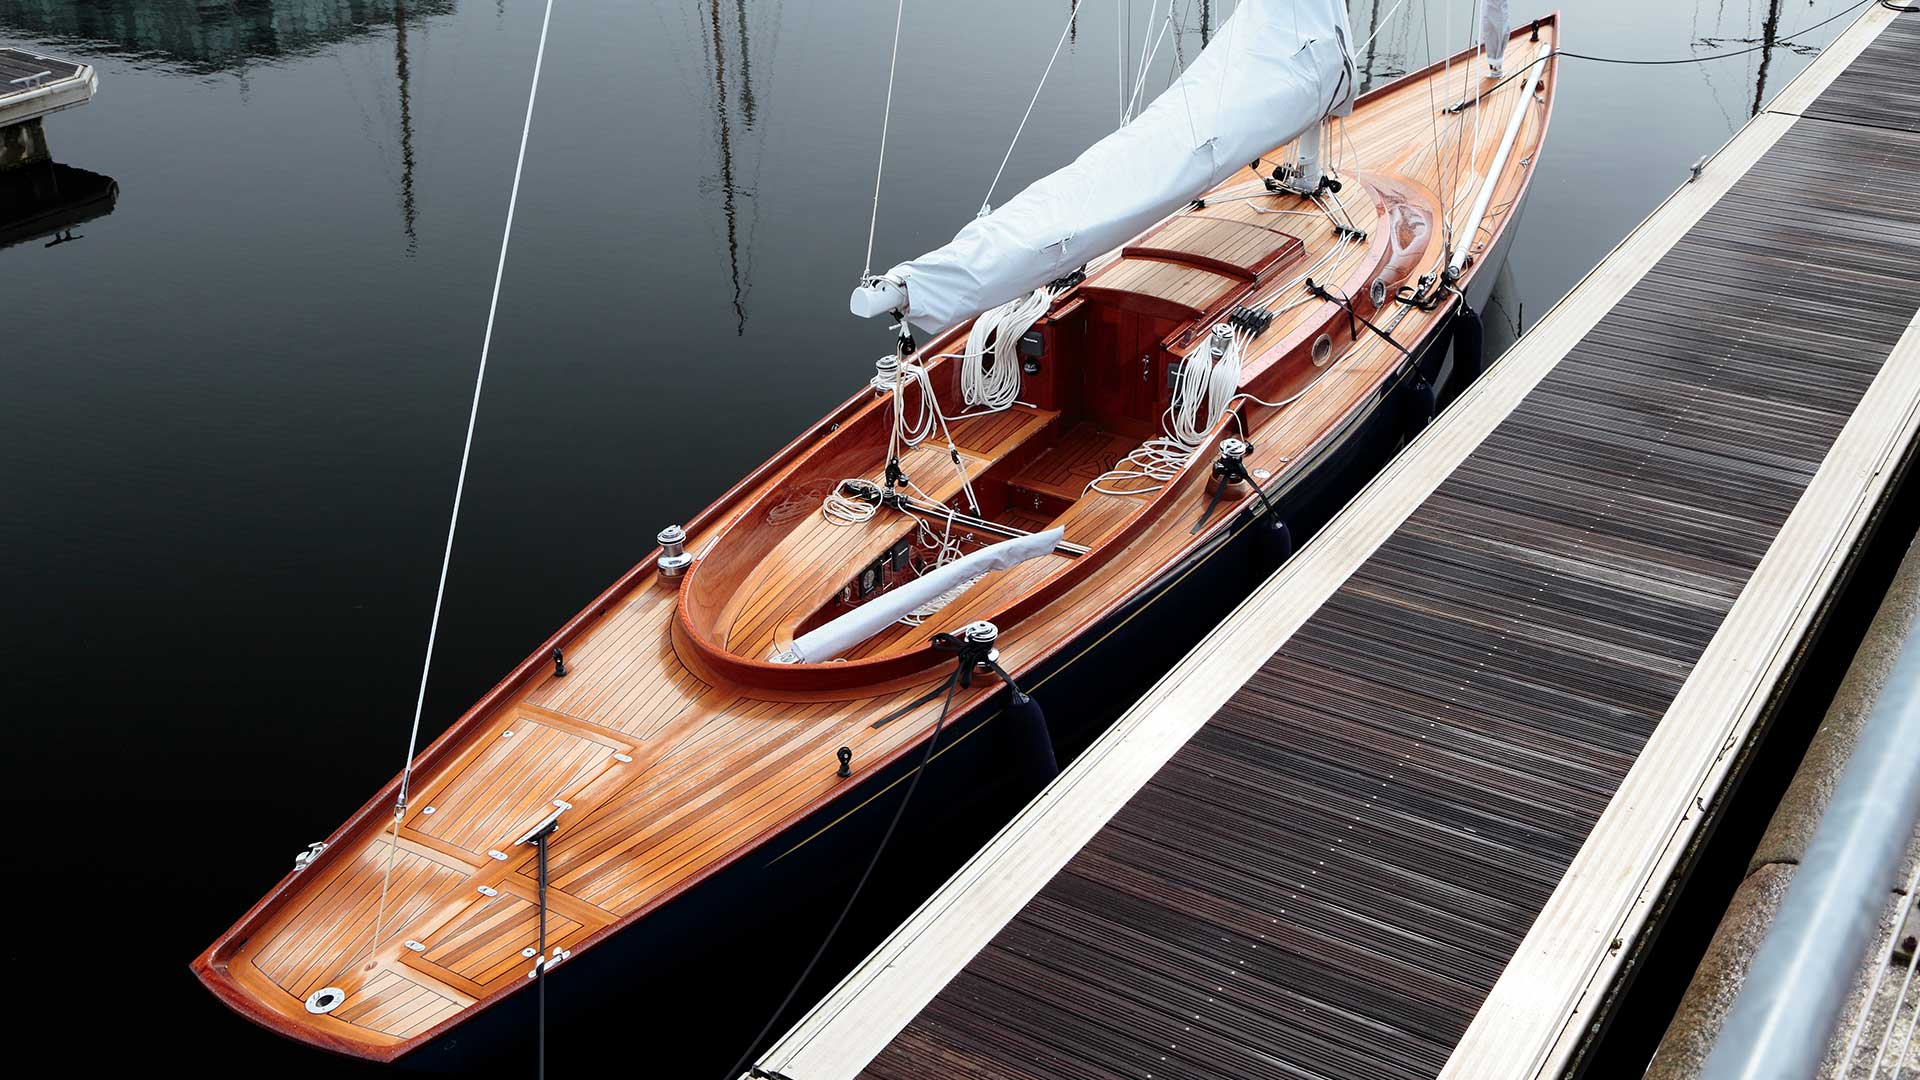 Bespoke luxury yacht moored at dock | Luxury yacht marketing | Spirit Yachts